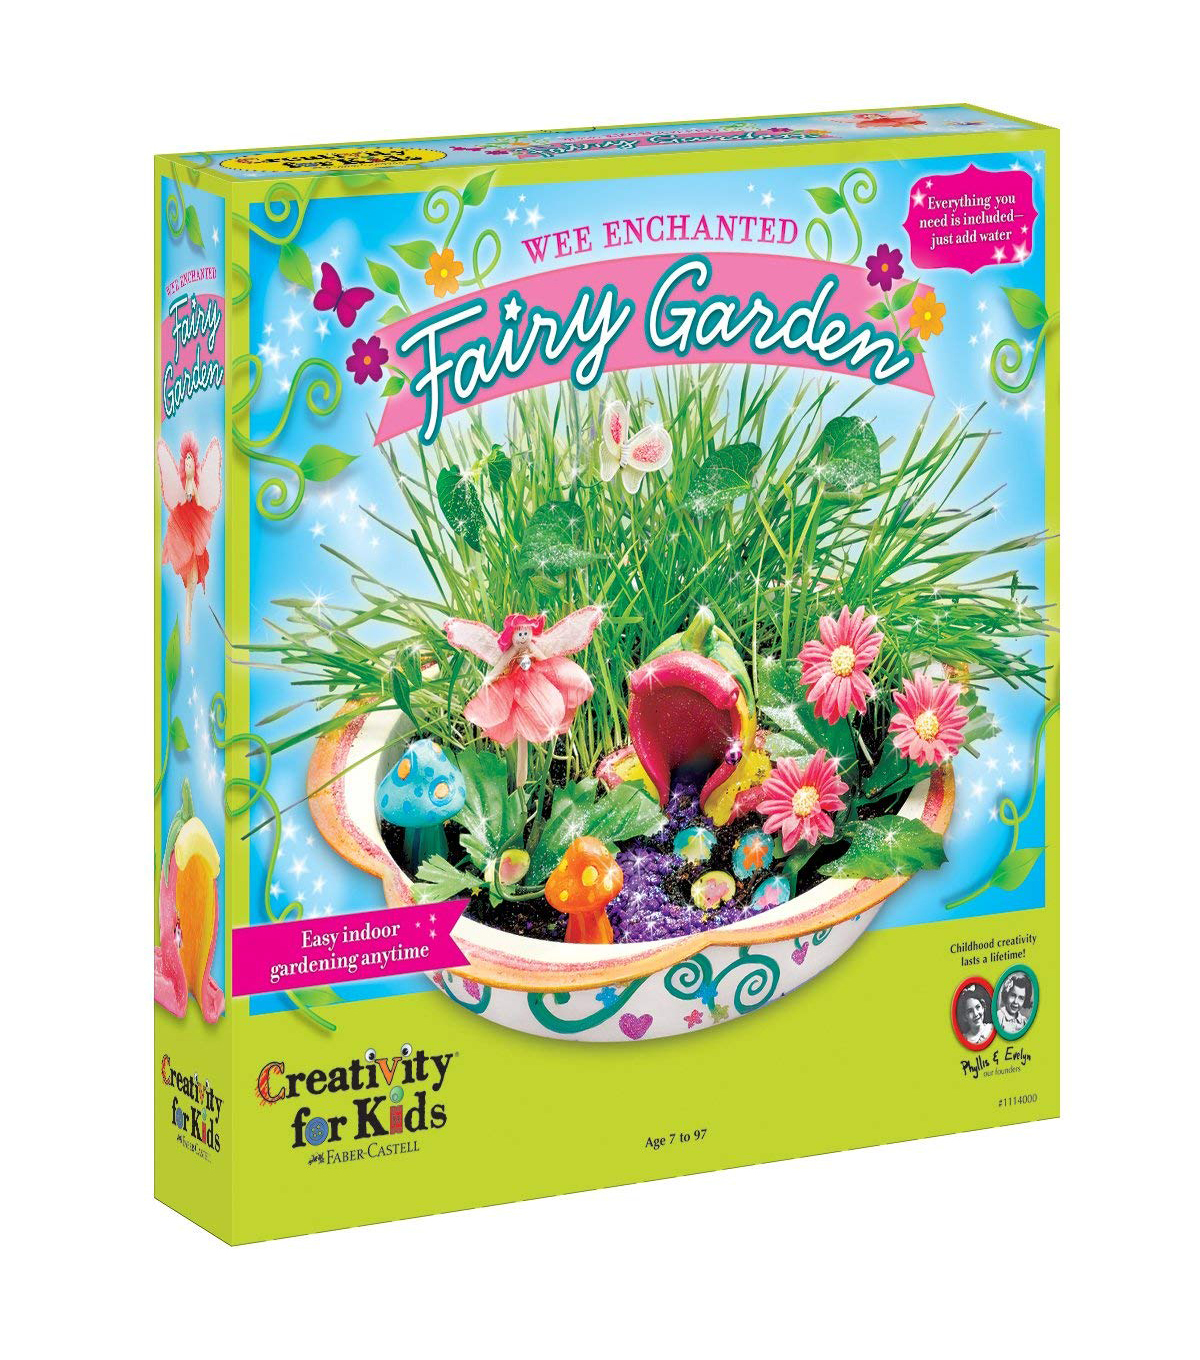 Creativity for Kids Kit-Enchanted Fairy Garden